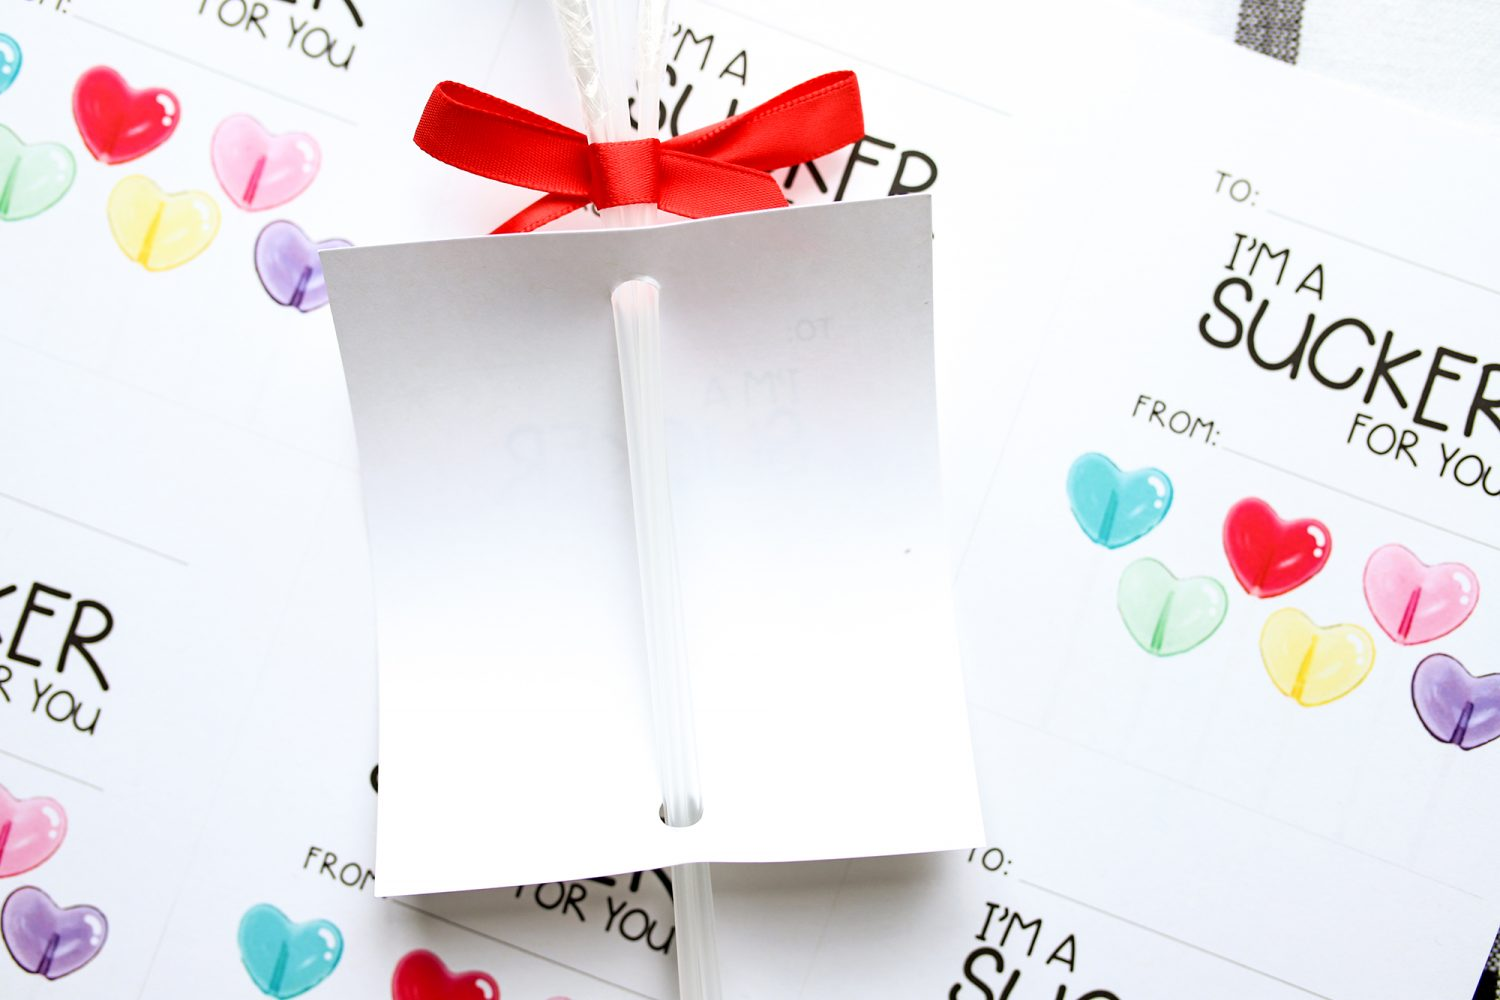 How to add a note to lollipops